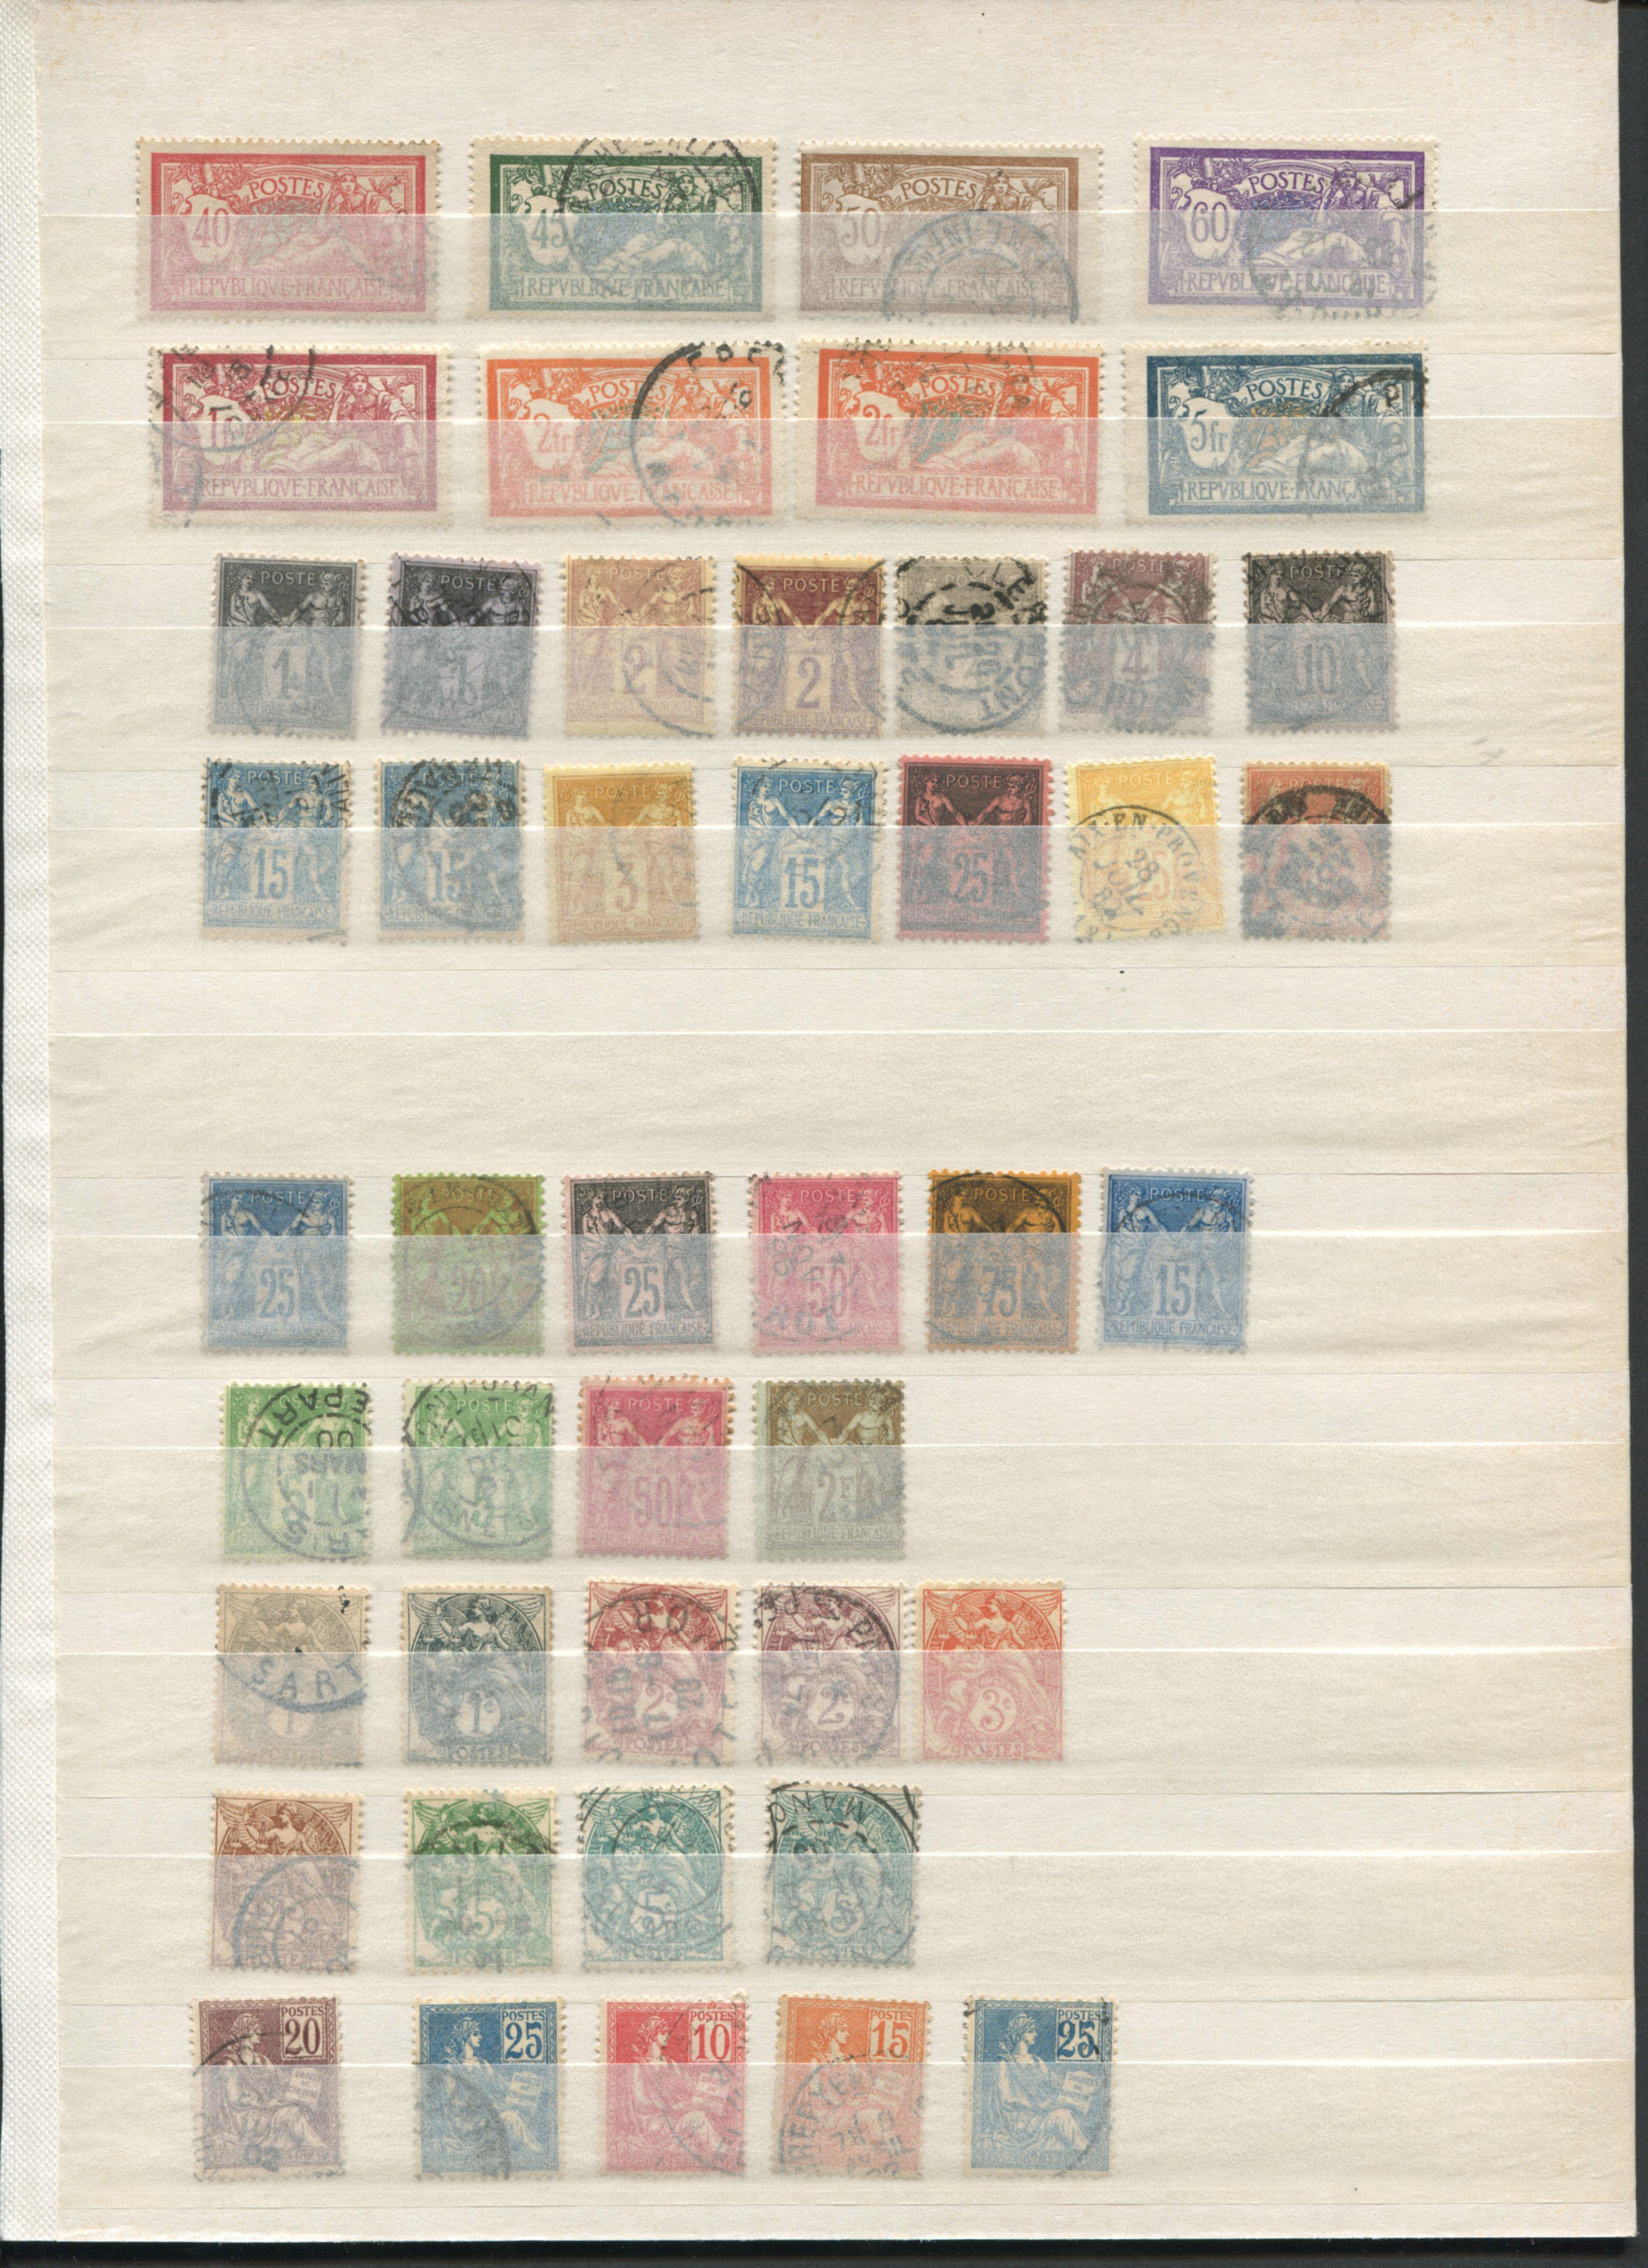 France 1877-1929 Stamp Collection